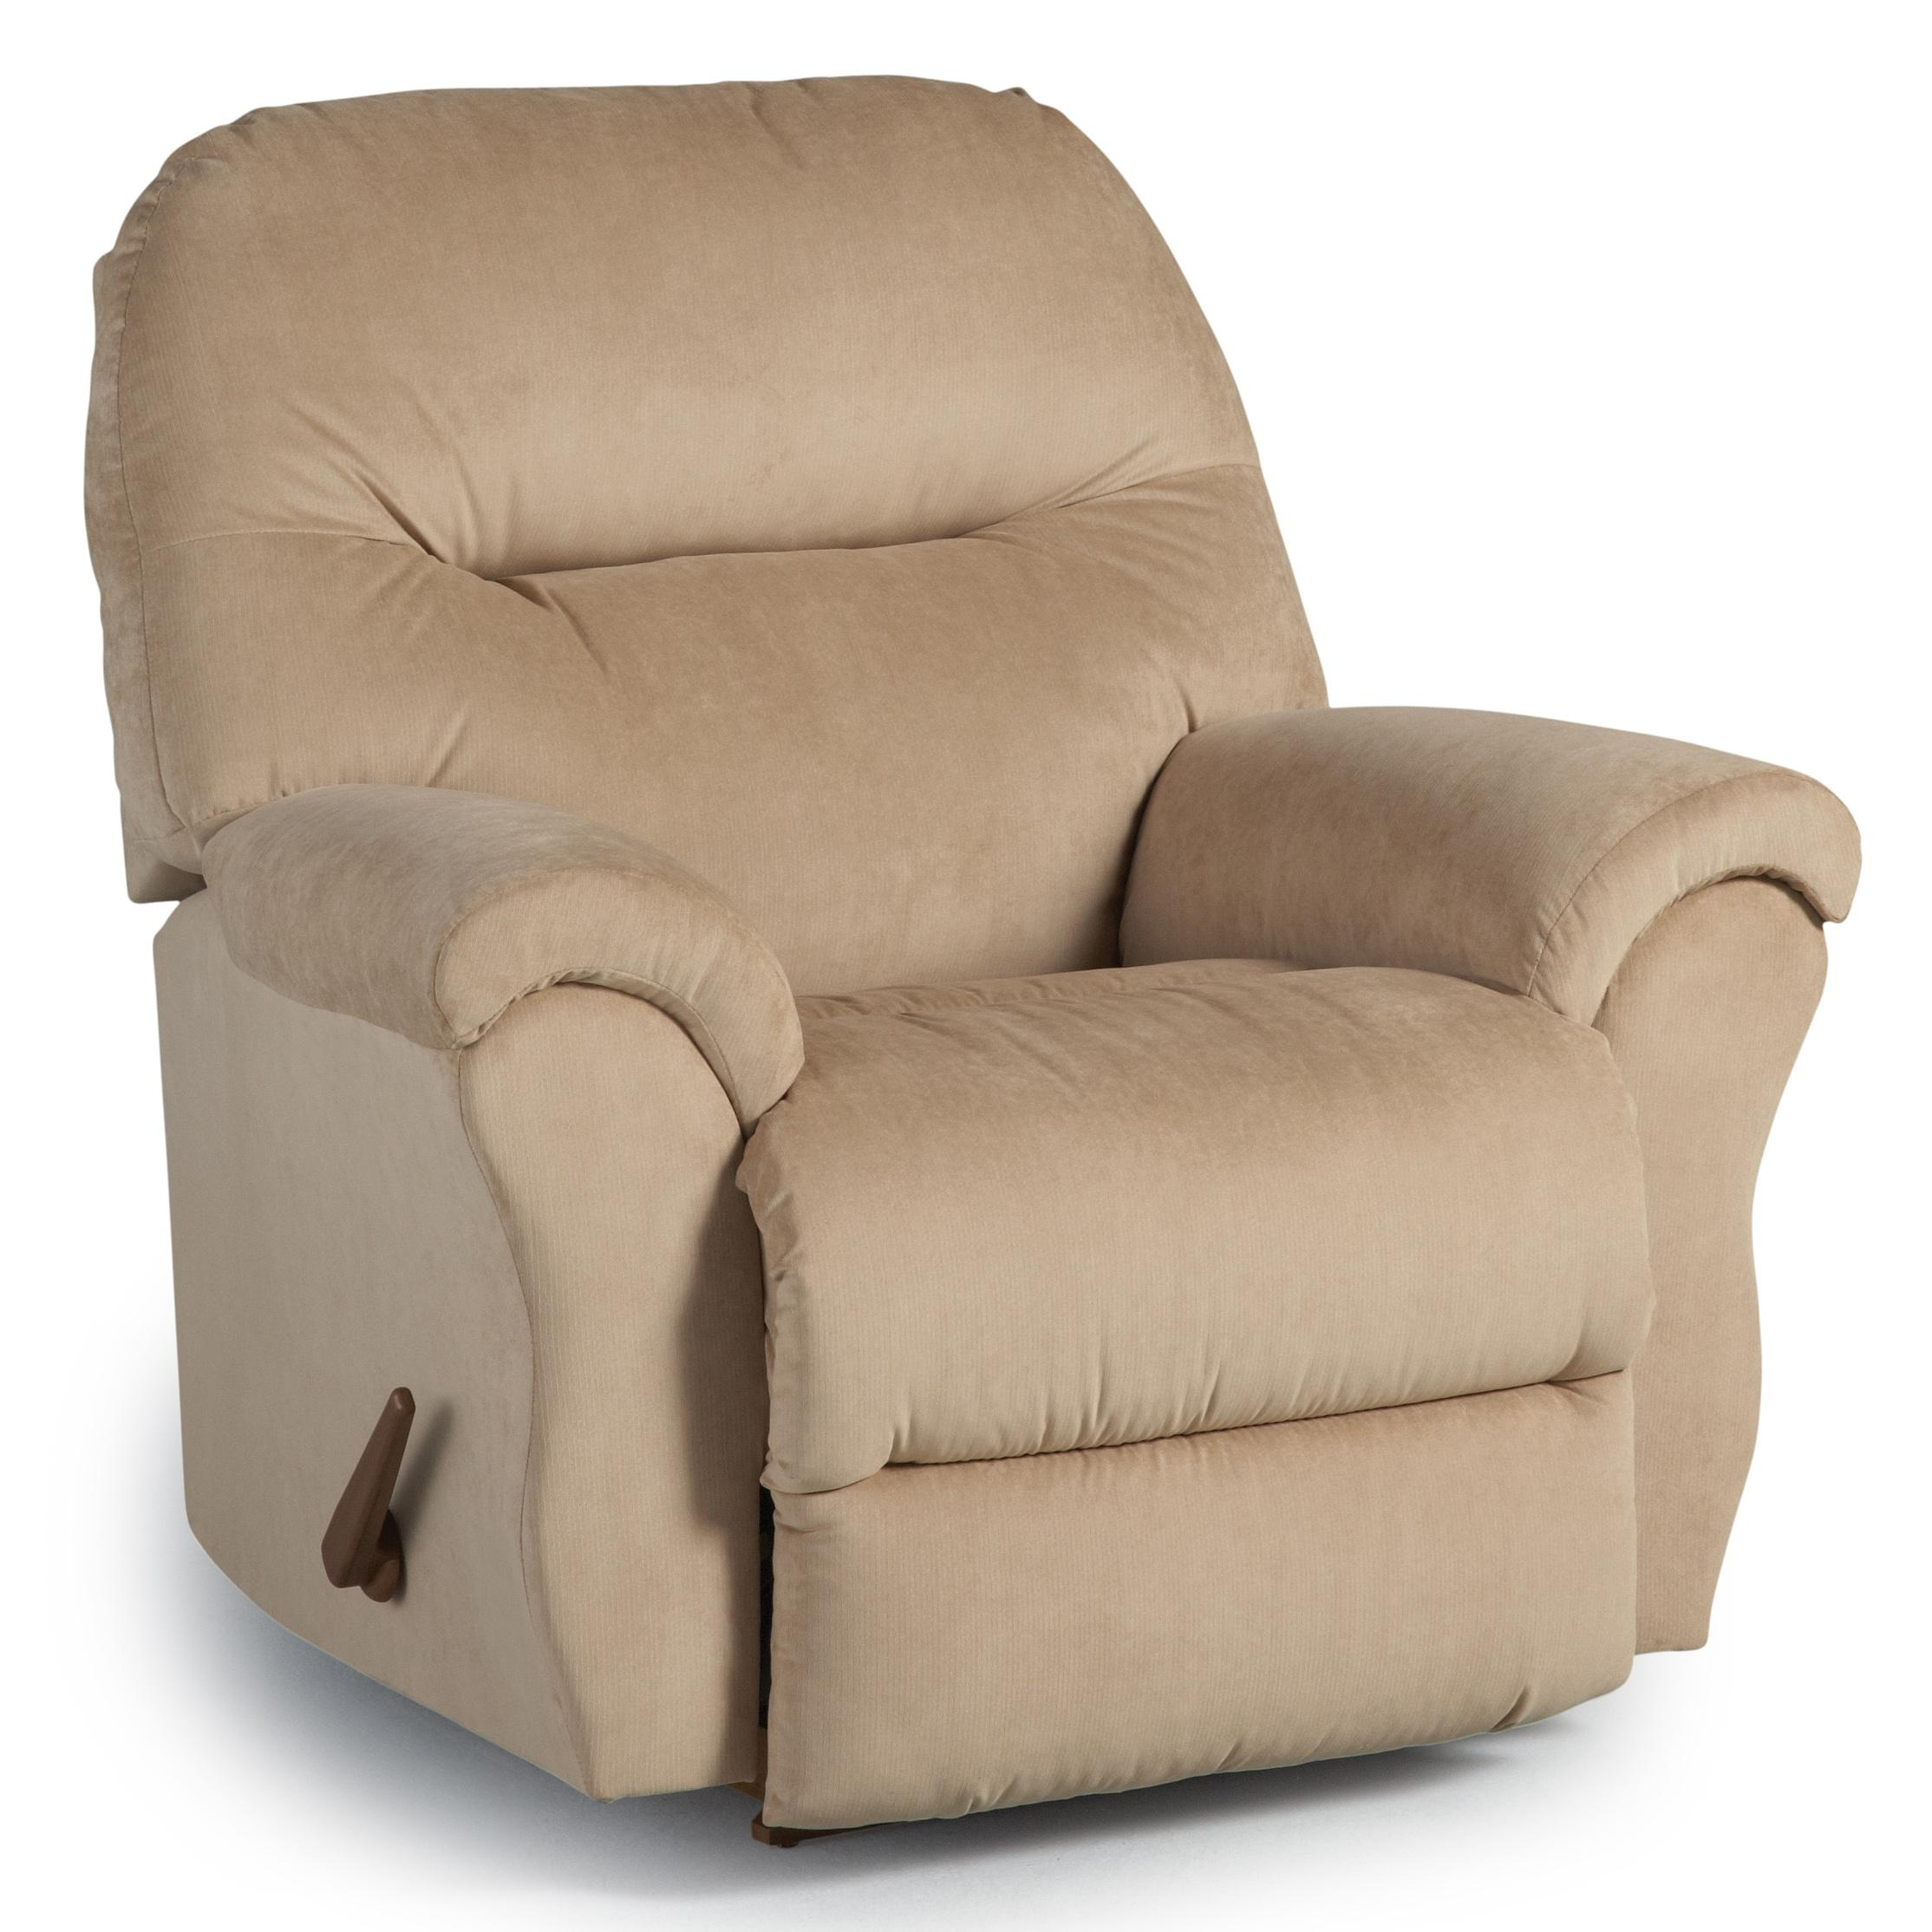 Best home furnishings recliners medium bodie swivel for Best furniture for home